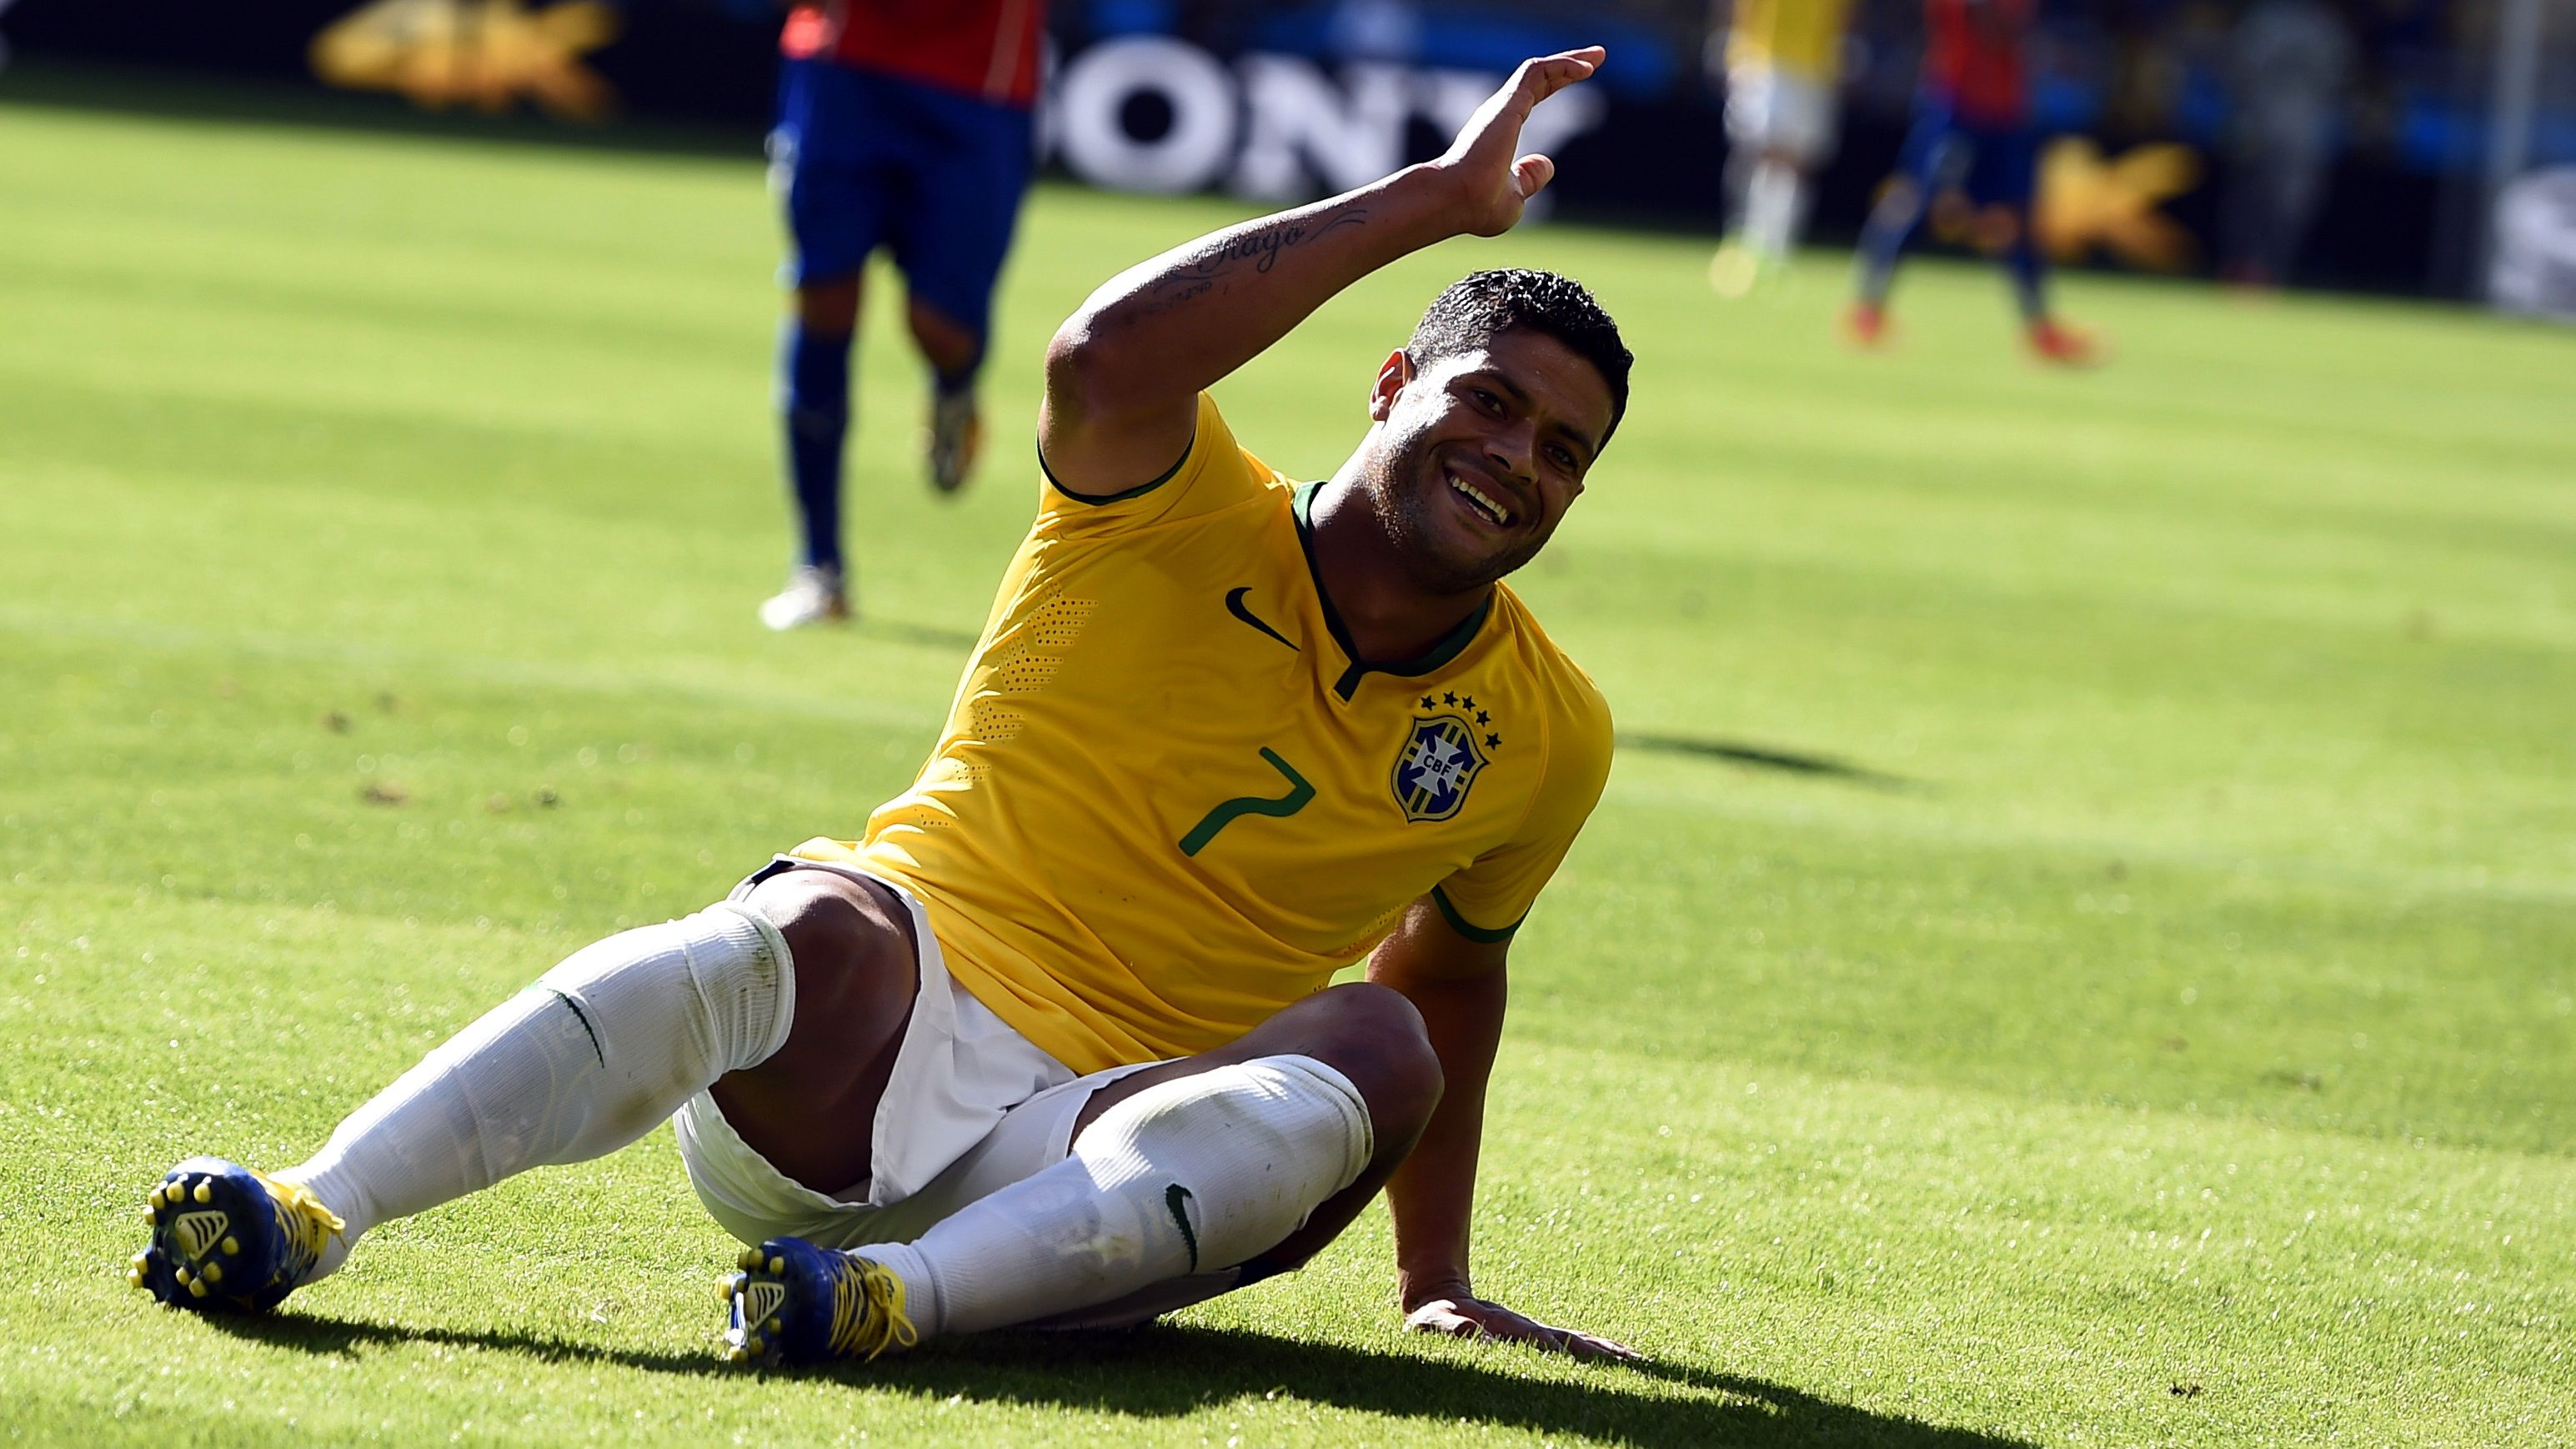 Brazil's Hulk reacts during their 2014 World Cup round of 16 game against Chile at the Mineirao stadium in Belo Horizonte June 28, 2014.